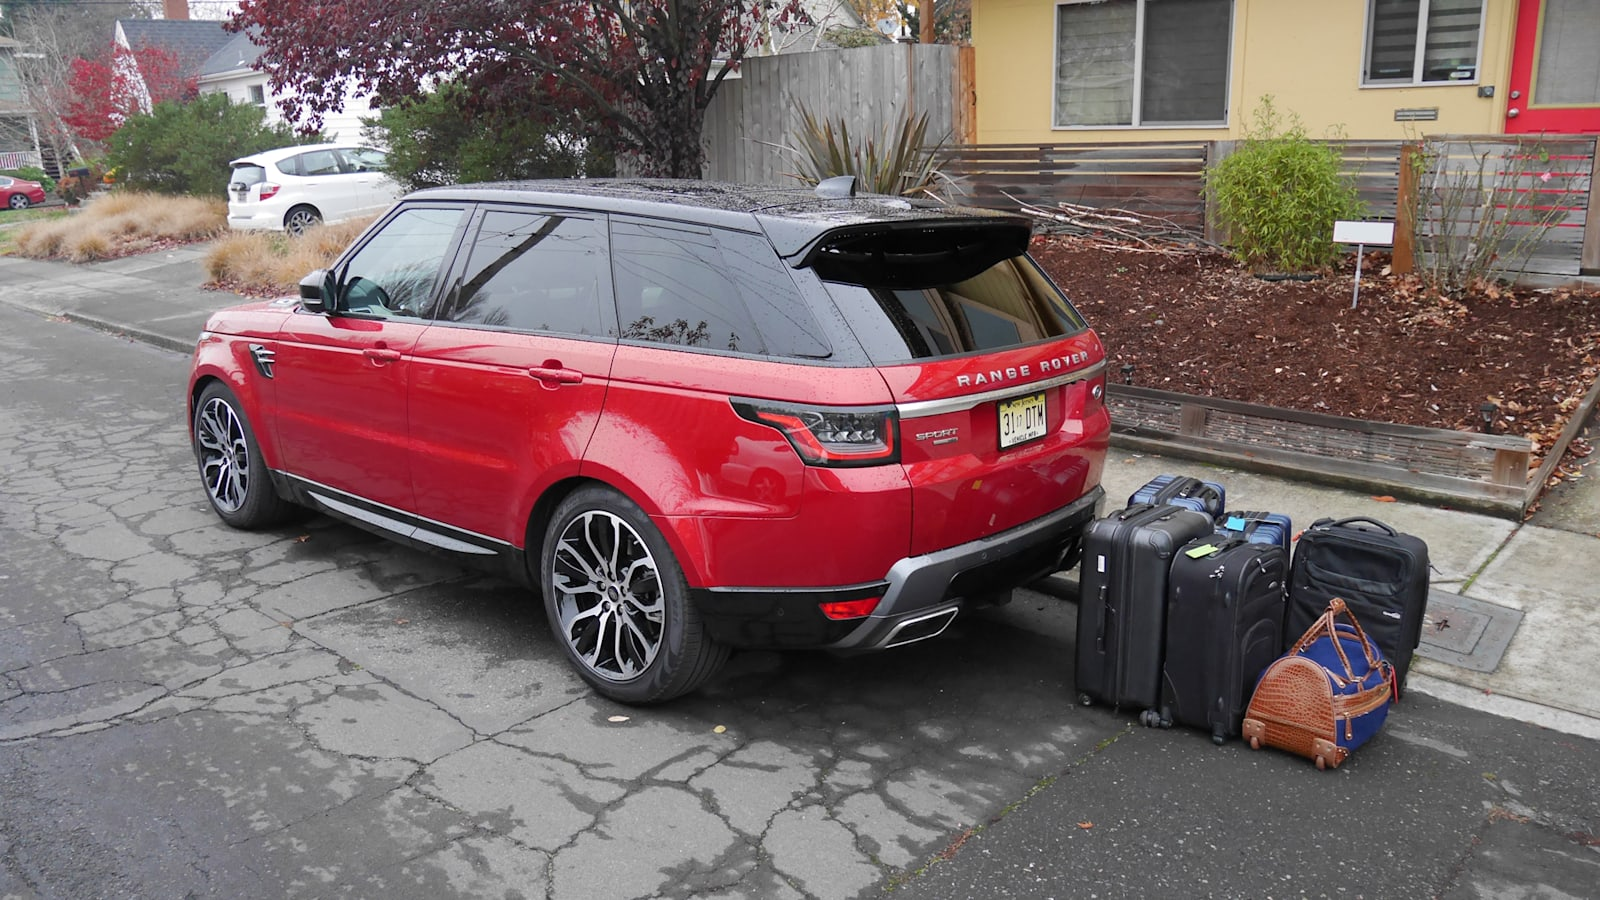 Range Rover Sport >> 2020 Land Rover Range Rover Sport Svr 4dr 4x4 Specs And Prices